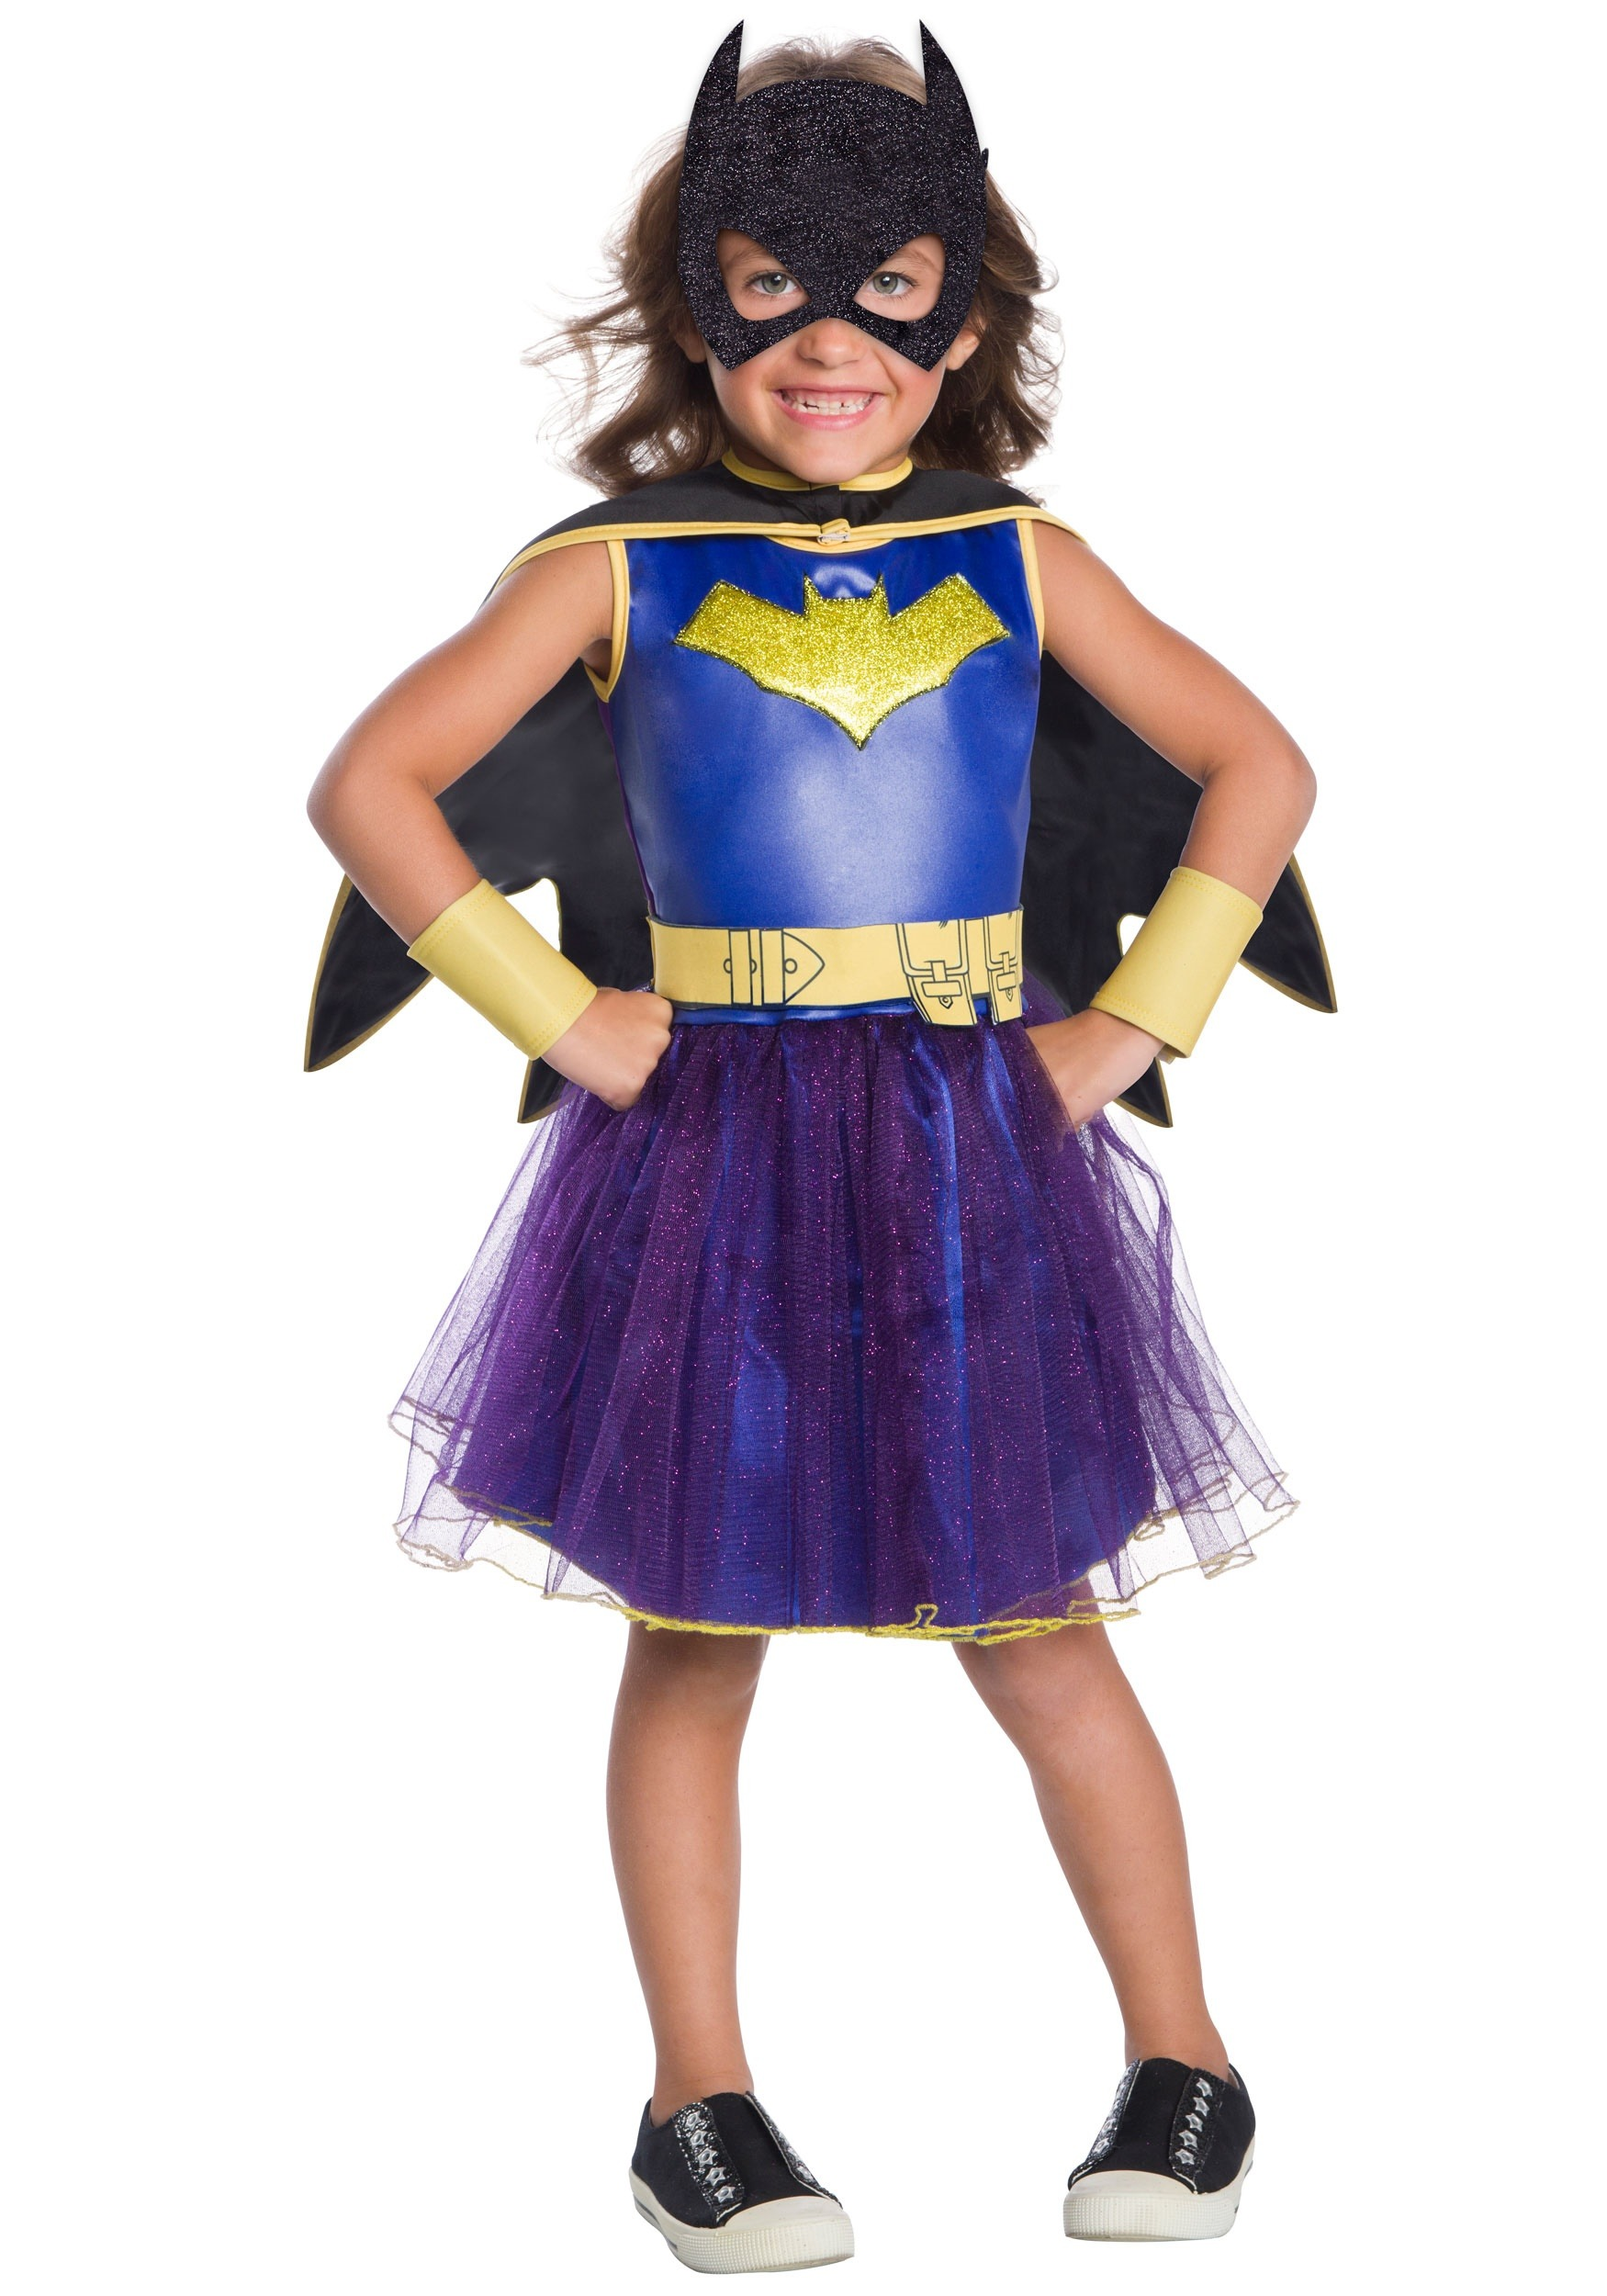 Deluxe Batgirl Toddler Girls Costume  sc 1 st  Halloween Costumes & Deluxe Batgirl Toddler Costume for Girls